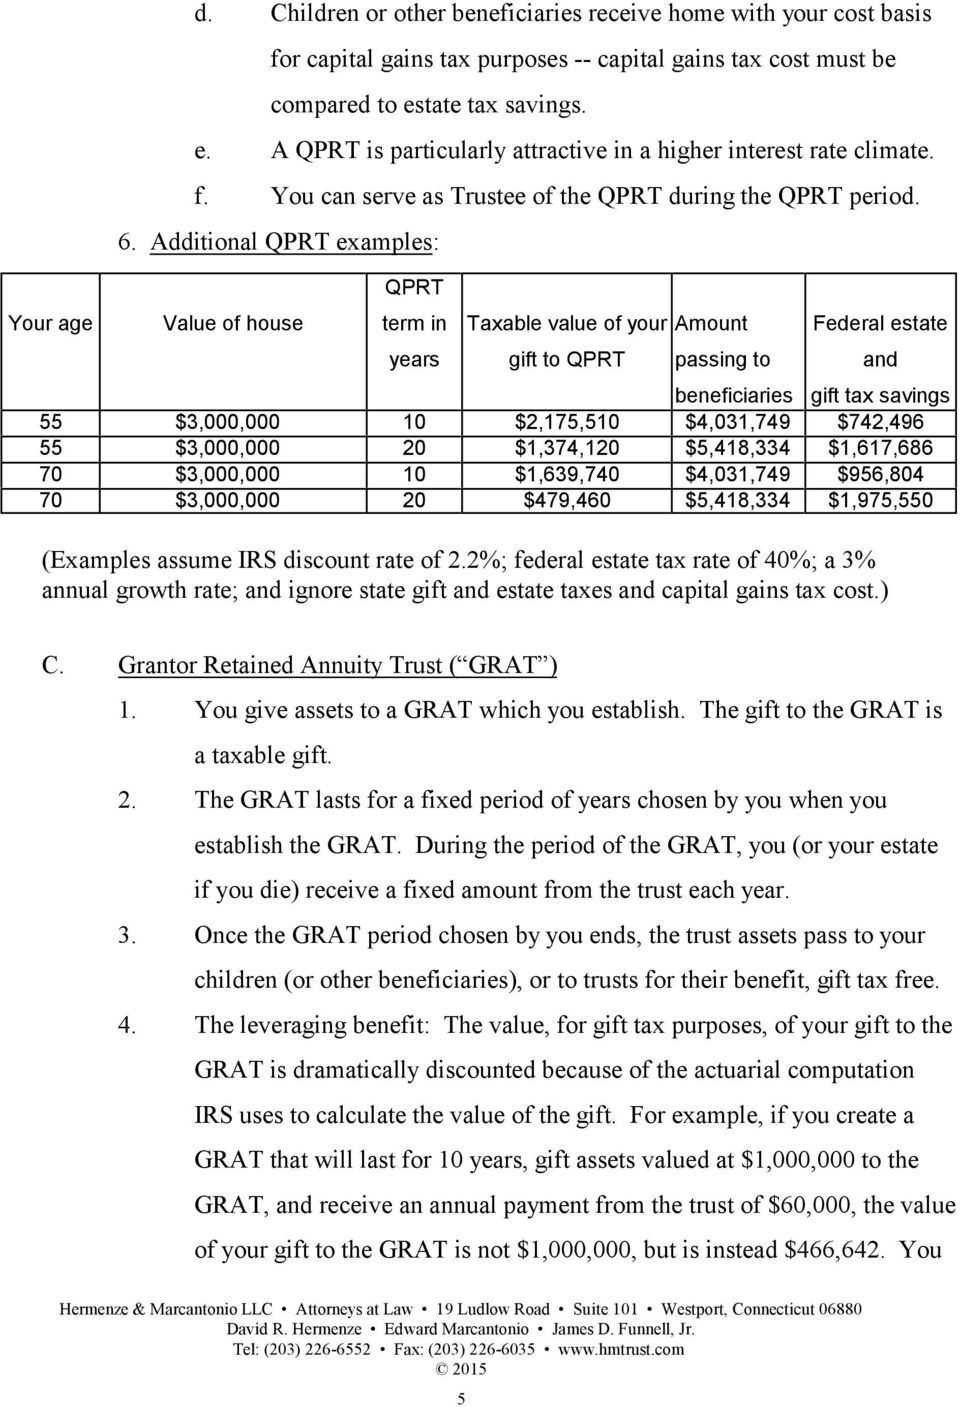 Additional QPRT examples: Value of house QPRT term in years Taxable value of your Amount gift to QPRT passing to Federal estate beneficiaries gift tax savings 55 $3,000,000 10 $2,175,510 $4,031,749